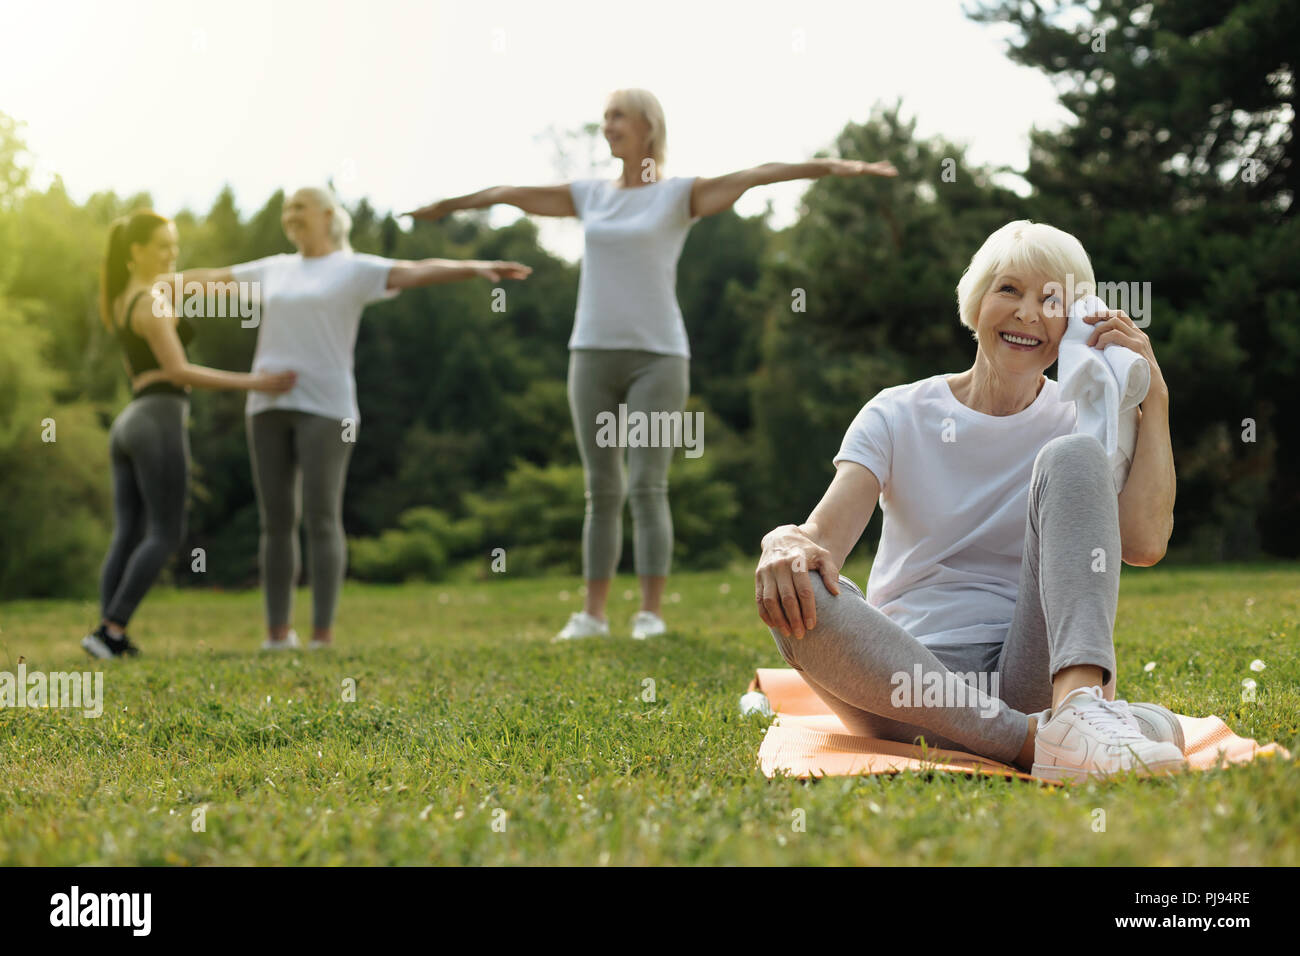 Happy retired woman beaming after exercising outdoors - Stock Image